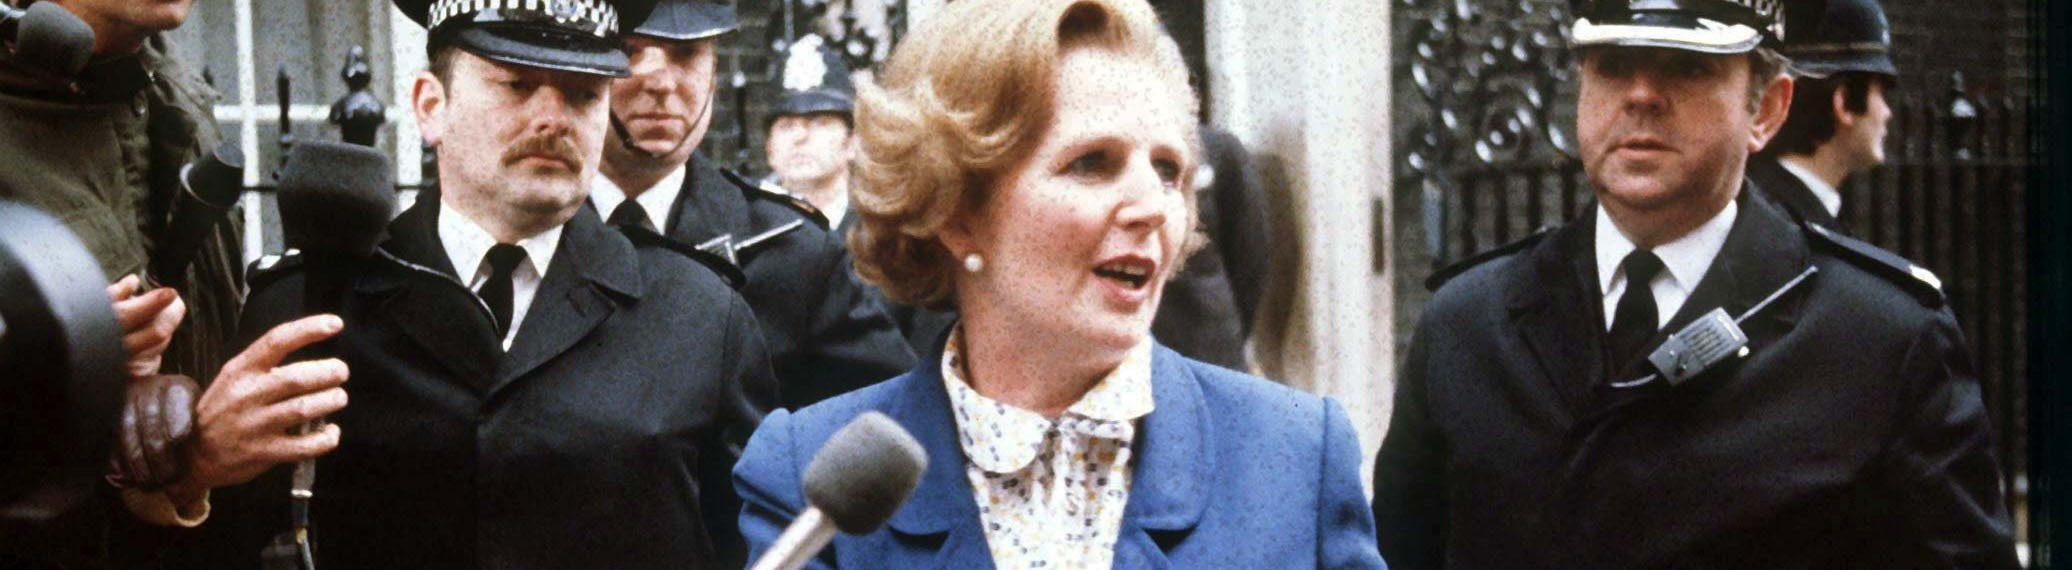 Premierministerin Margaret Thatcher am 4. Mai 1979 vor ihrem Amtssitz Downing Street Nr. 10 in London.